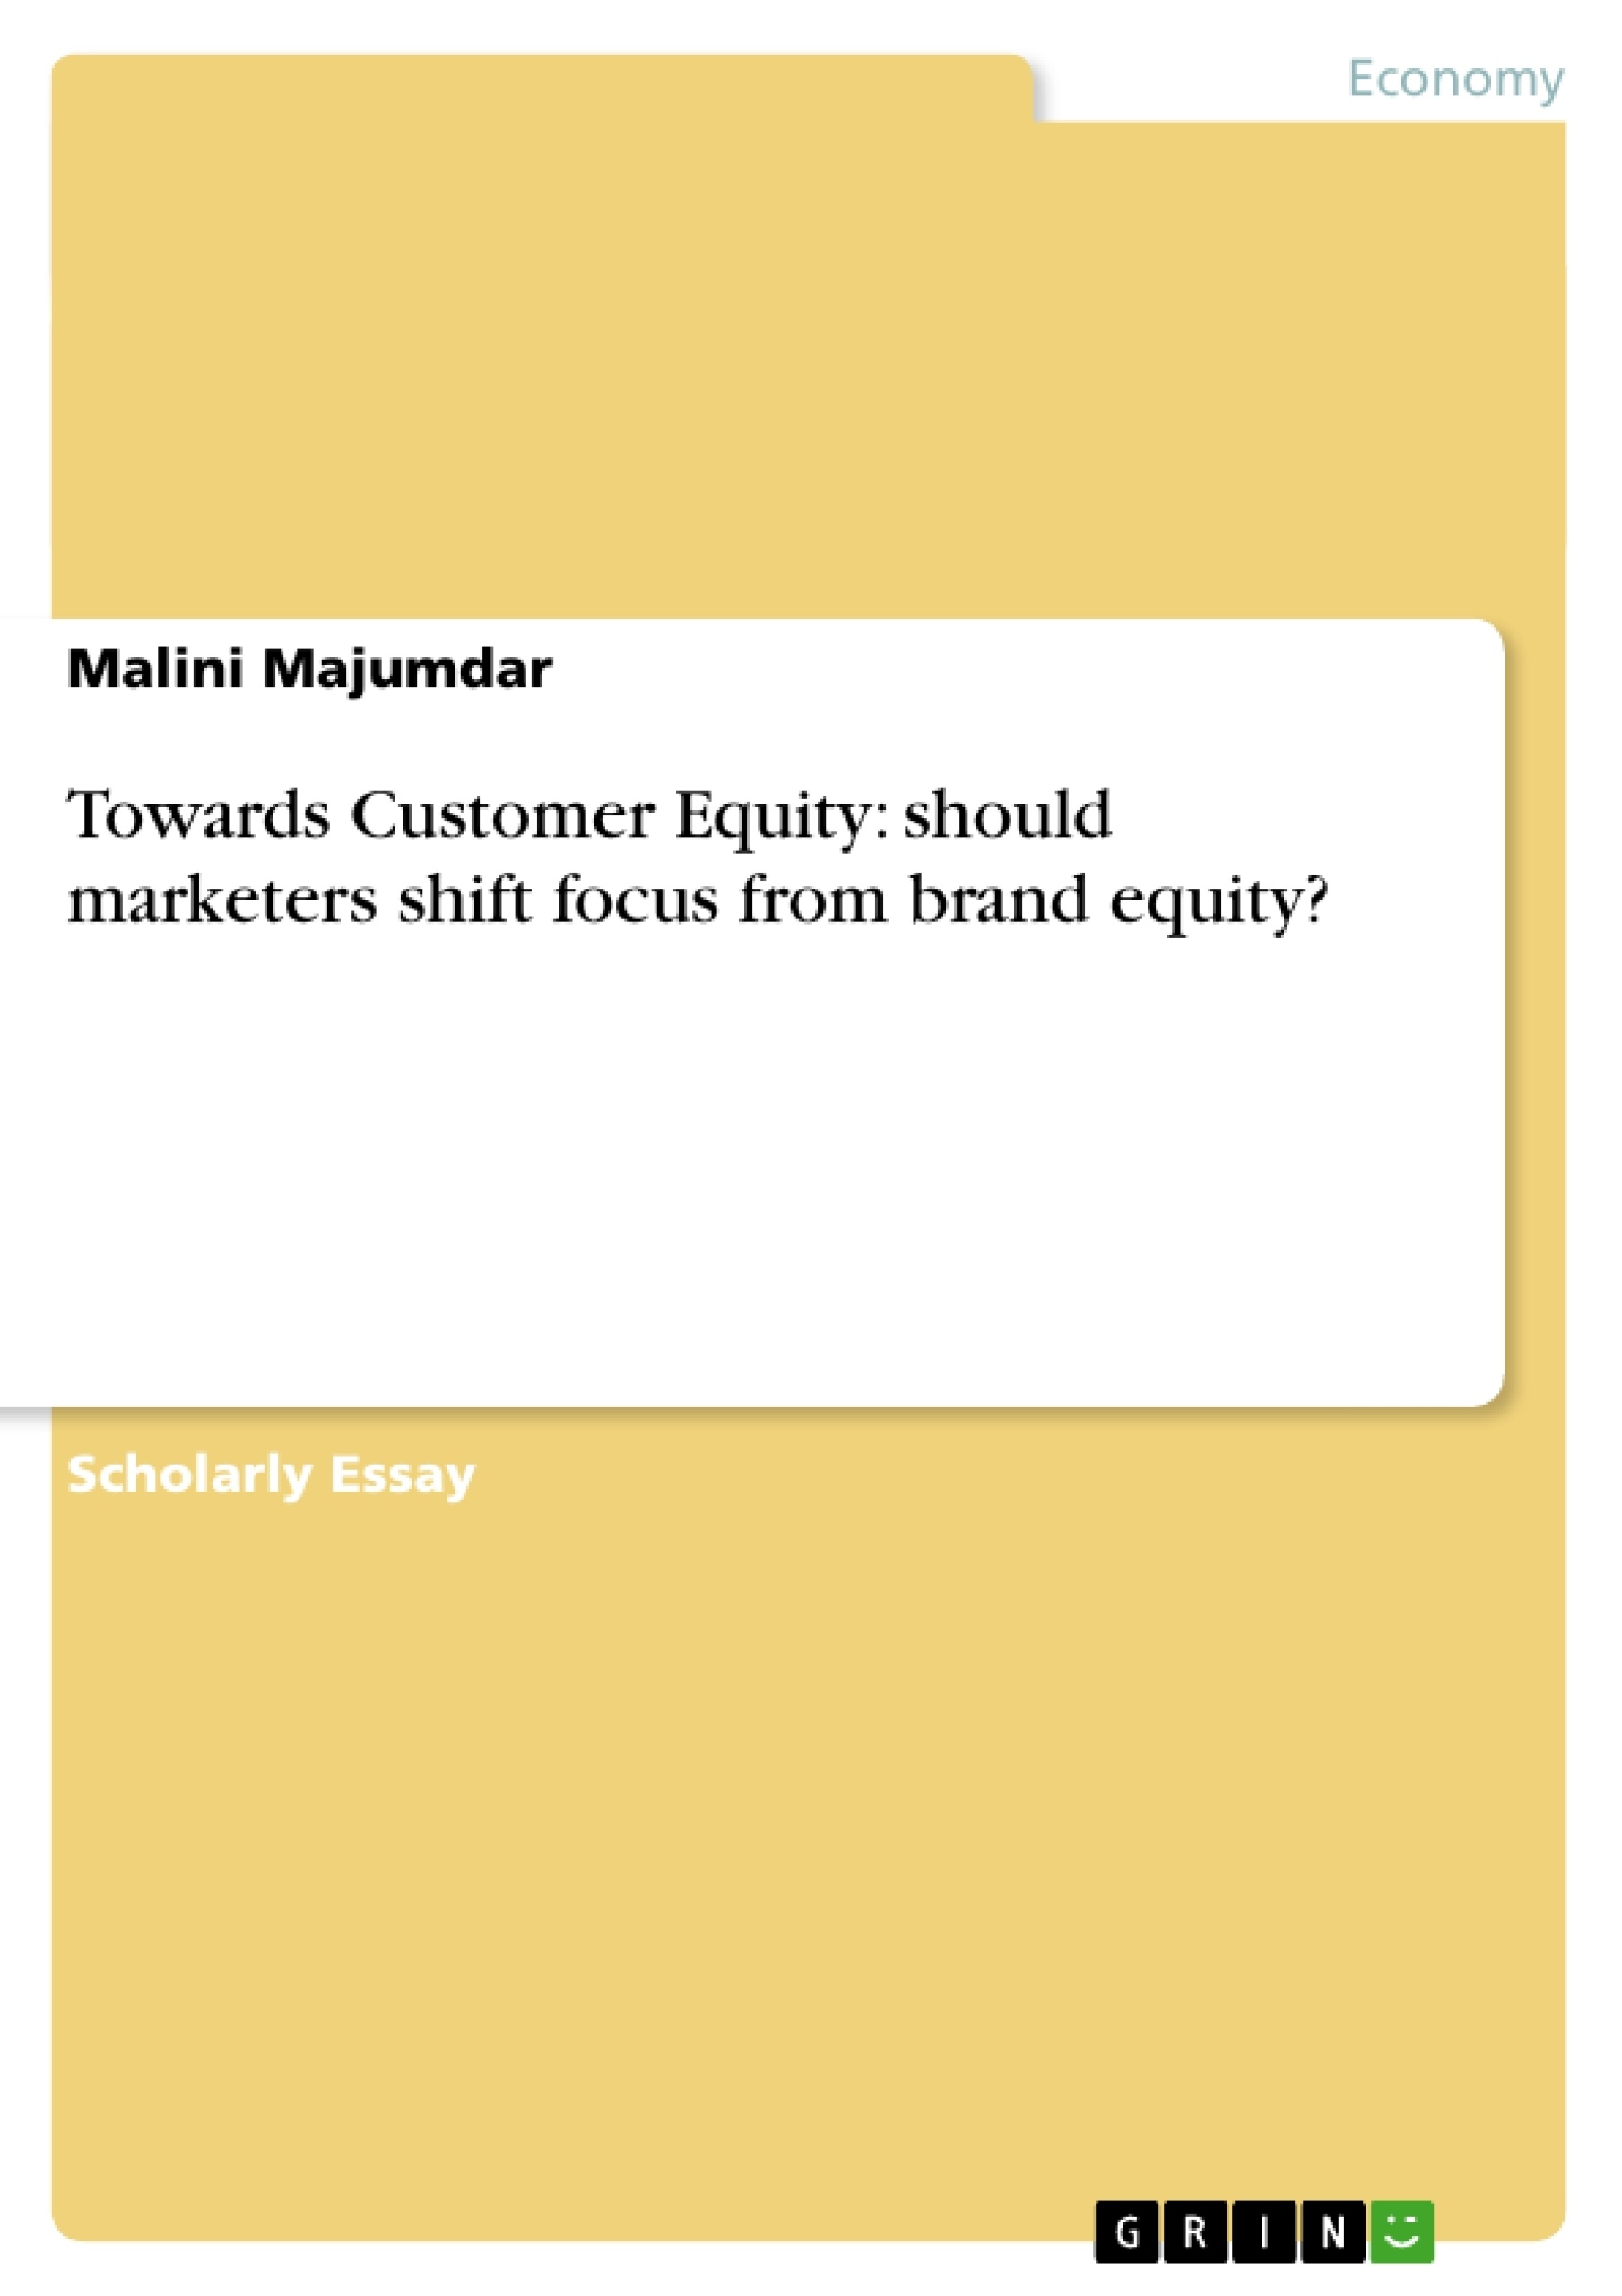 Title: Towards Customer Equity: should marketers shift focus from brand equity?